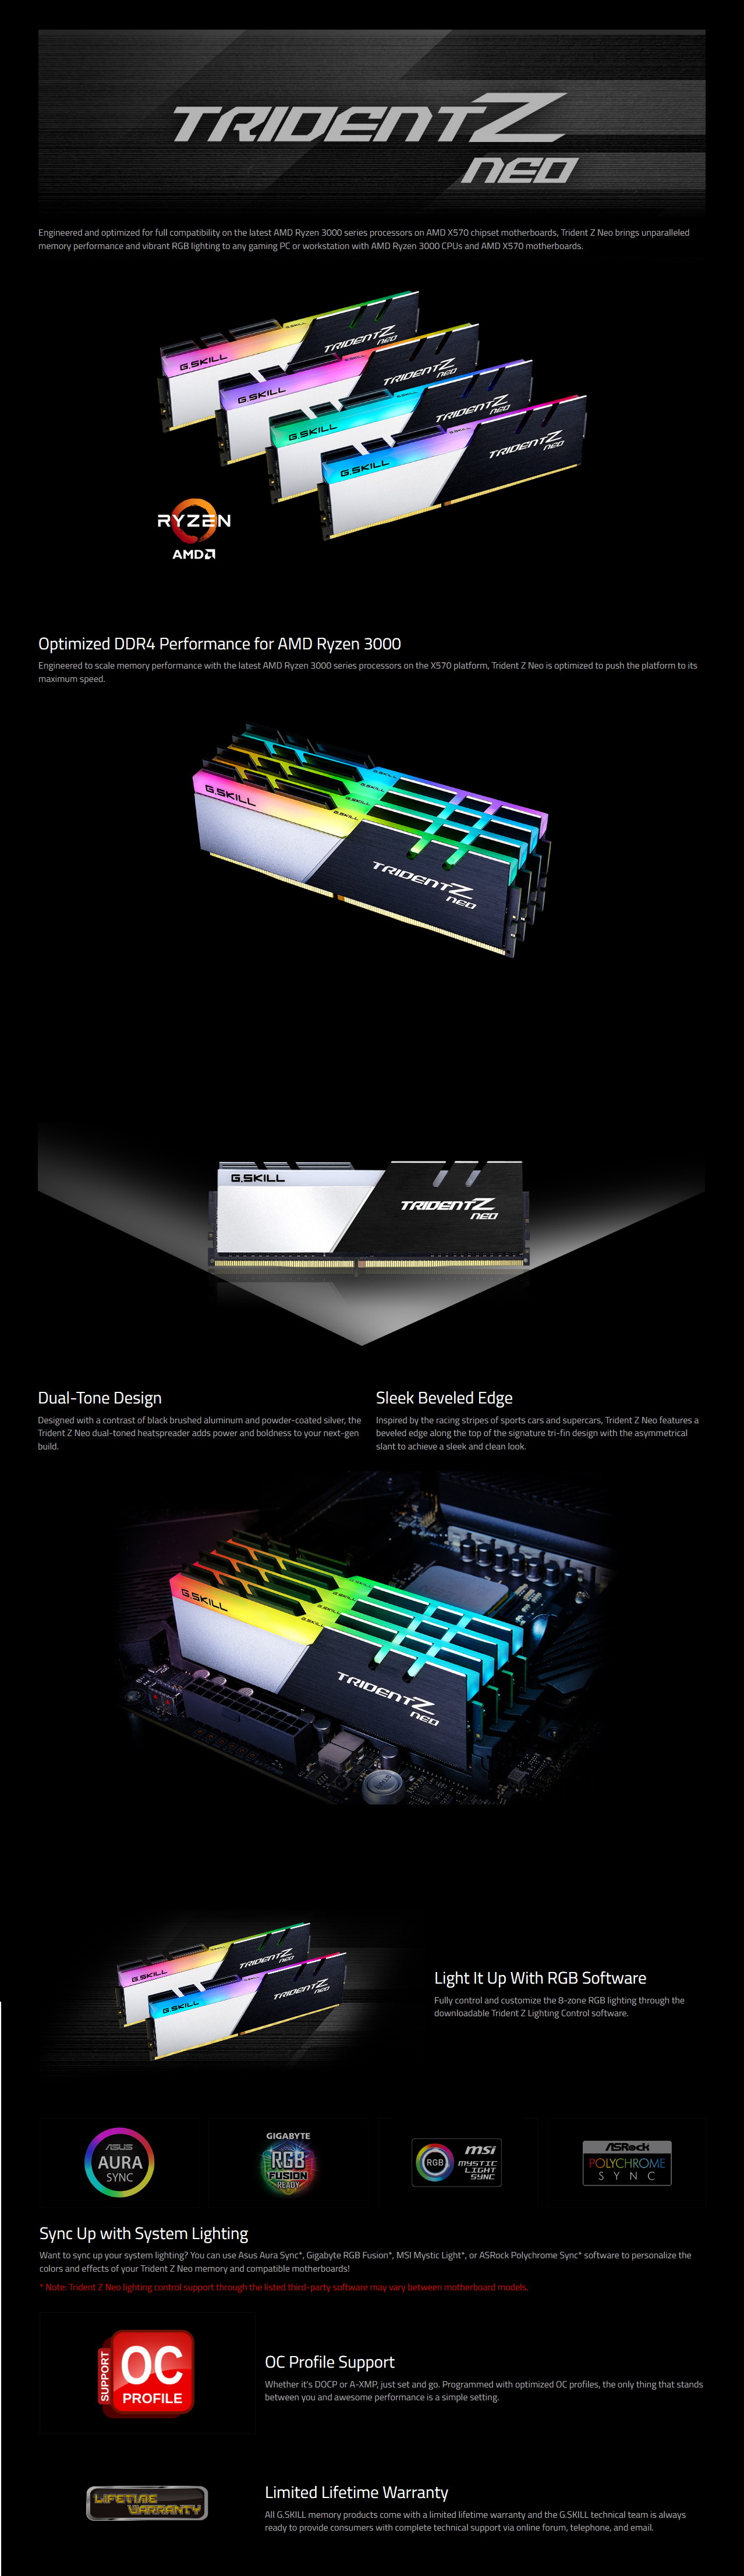 A large marketing image providing additional information about the product G.Skill 128GB Kit (4x32GB) DDR4 Trident Z RGB Neo C18 3600Mhz - Additional alt info not provided